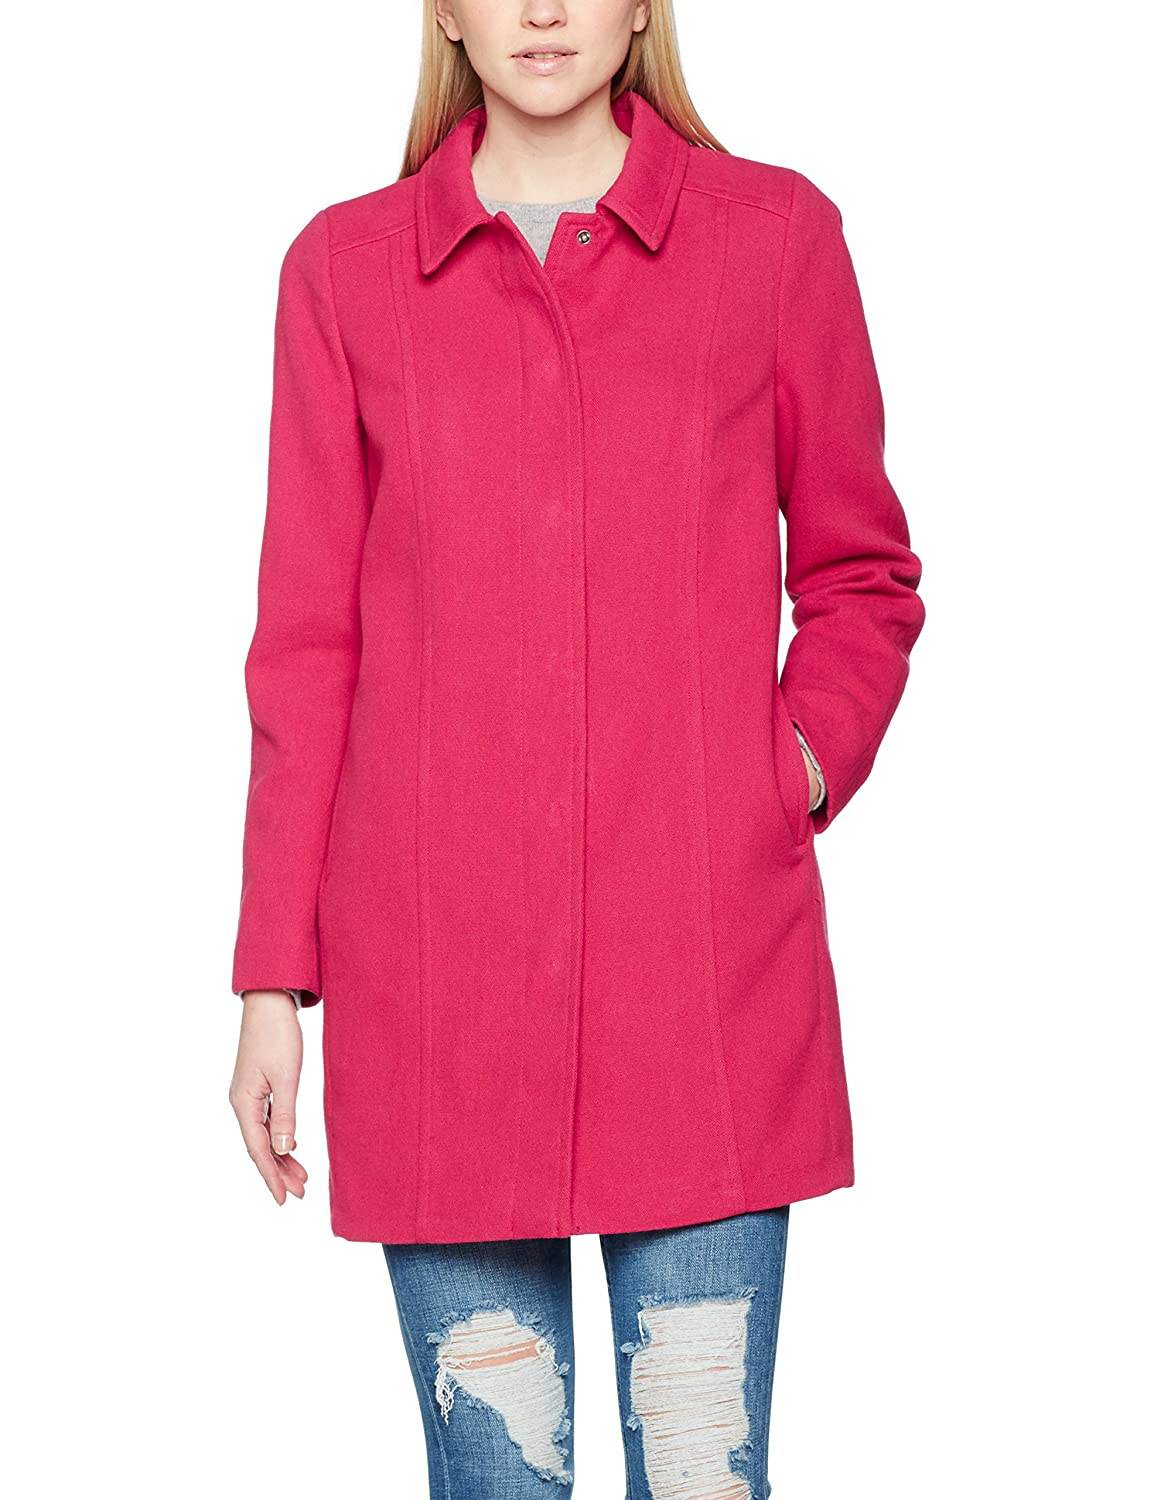 TALLA 8 (Talla del fabricante: 40). United Colors of Benetton Classic Coloured Coat Abrigo para Mujer